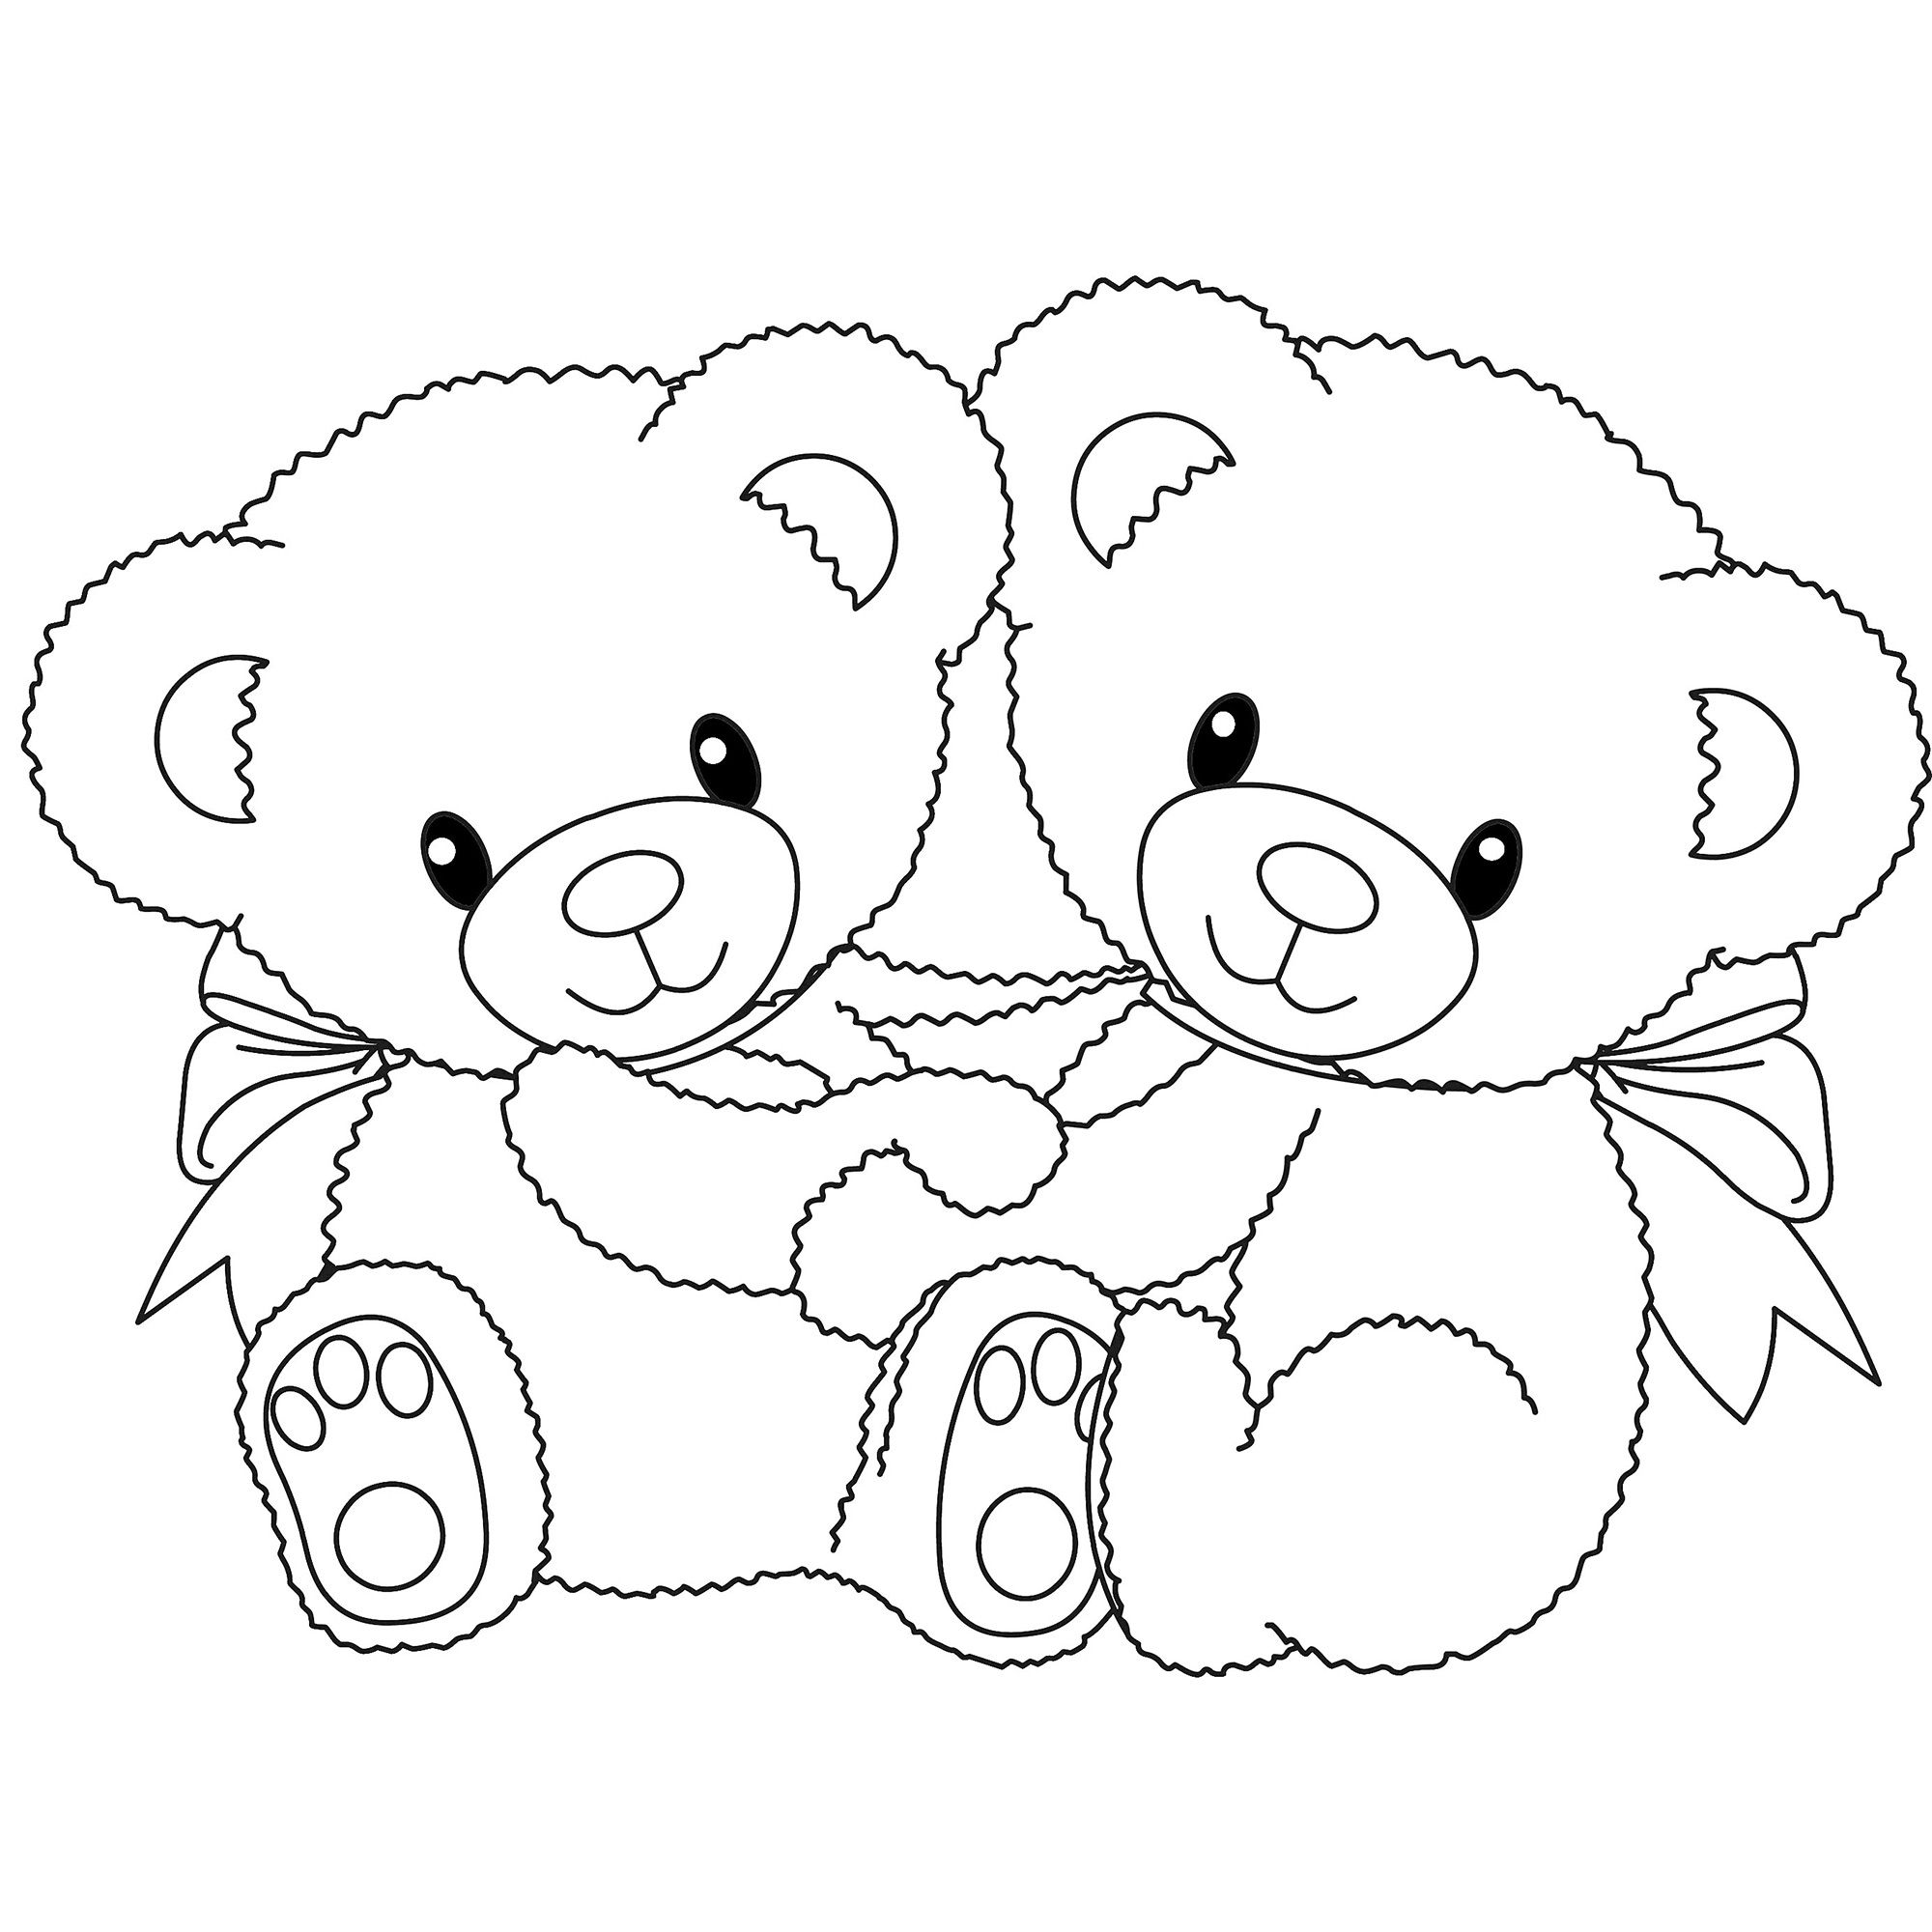 Teddy bear coloring pages free printable coloring pages | Clip Art ...